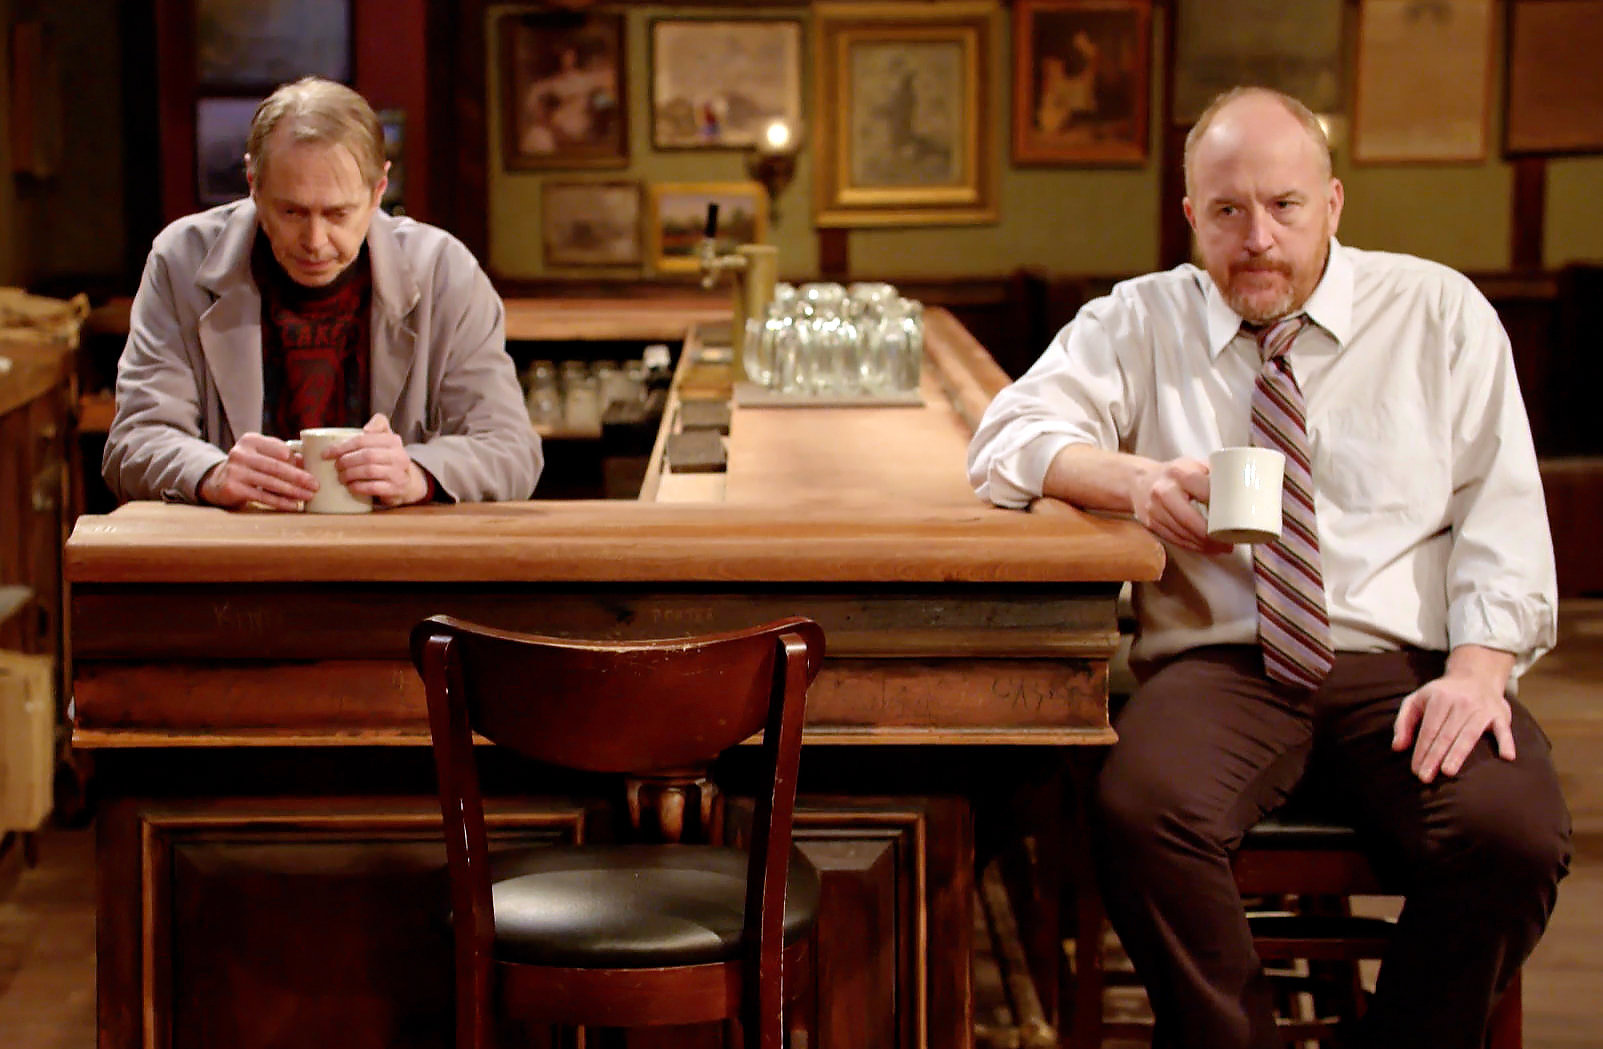 horace_and_pete.jpg (253.77 Kb)